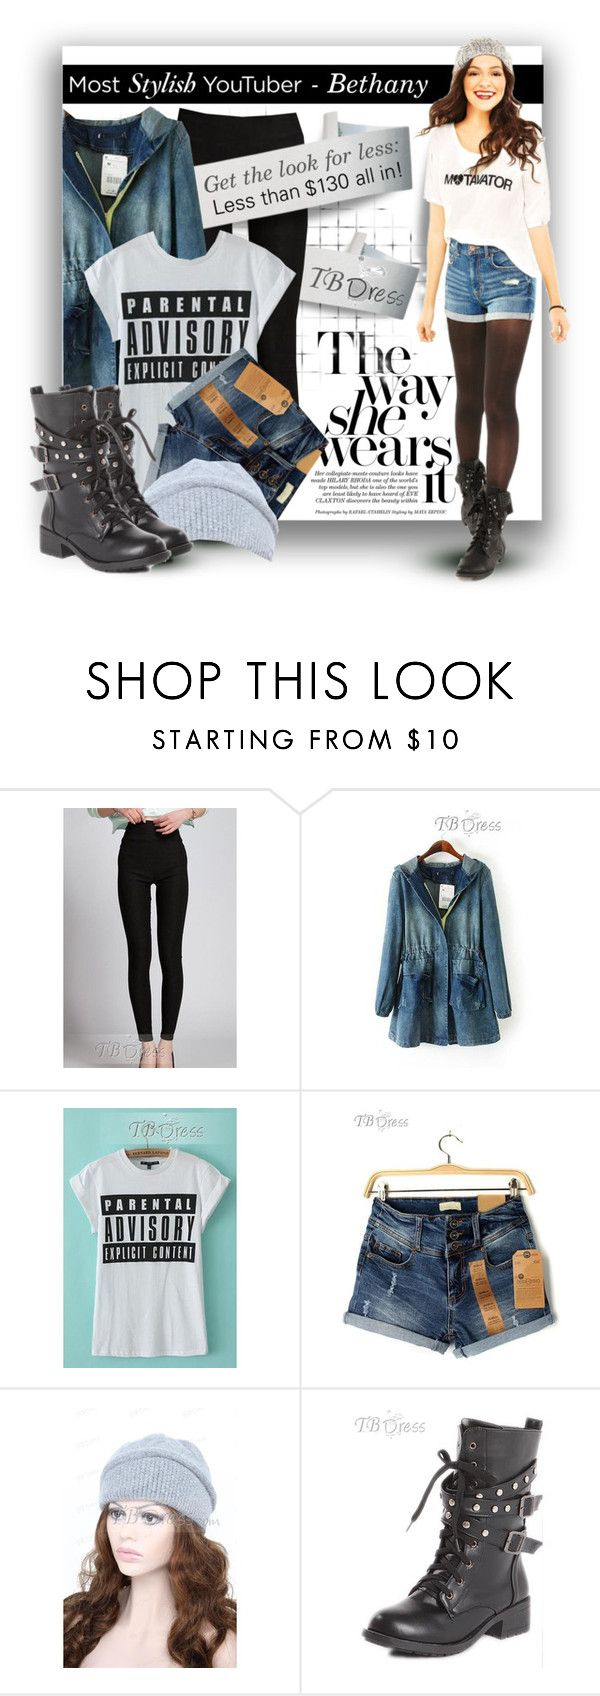 """Bethany - get the look with TB Dress"" by crapiblogabout ❤ liked on Polyvore featuring Aéropostale, GetTheLook, denim, bethanymota, tbdress and PolyvoreMostStylish"